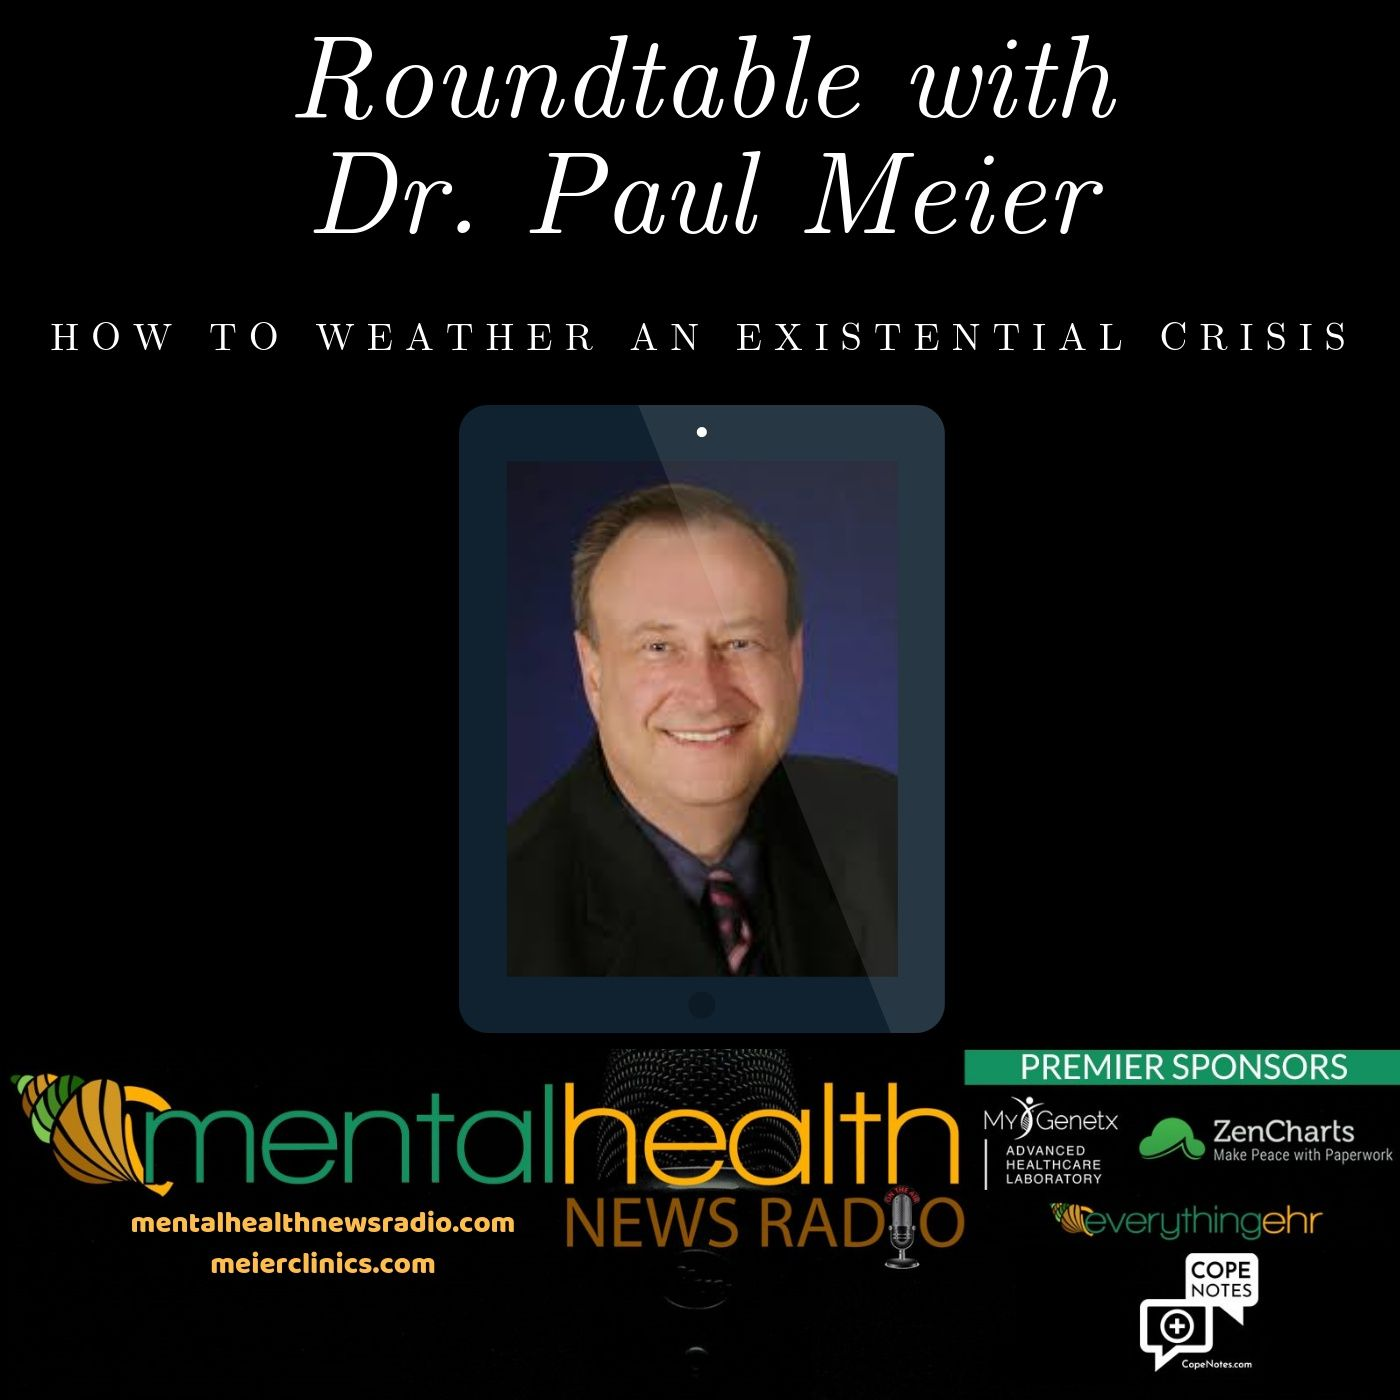 Mental Health News Radio - Roundtable With Dr. Paul Meier: How to Weather an Existential Crisis